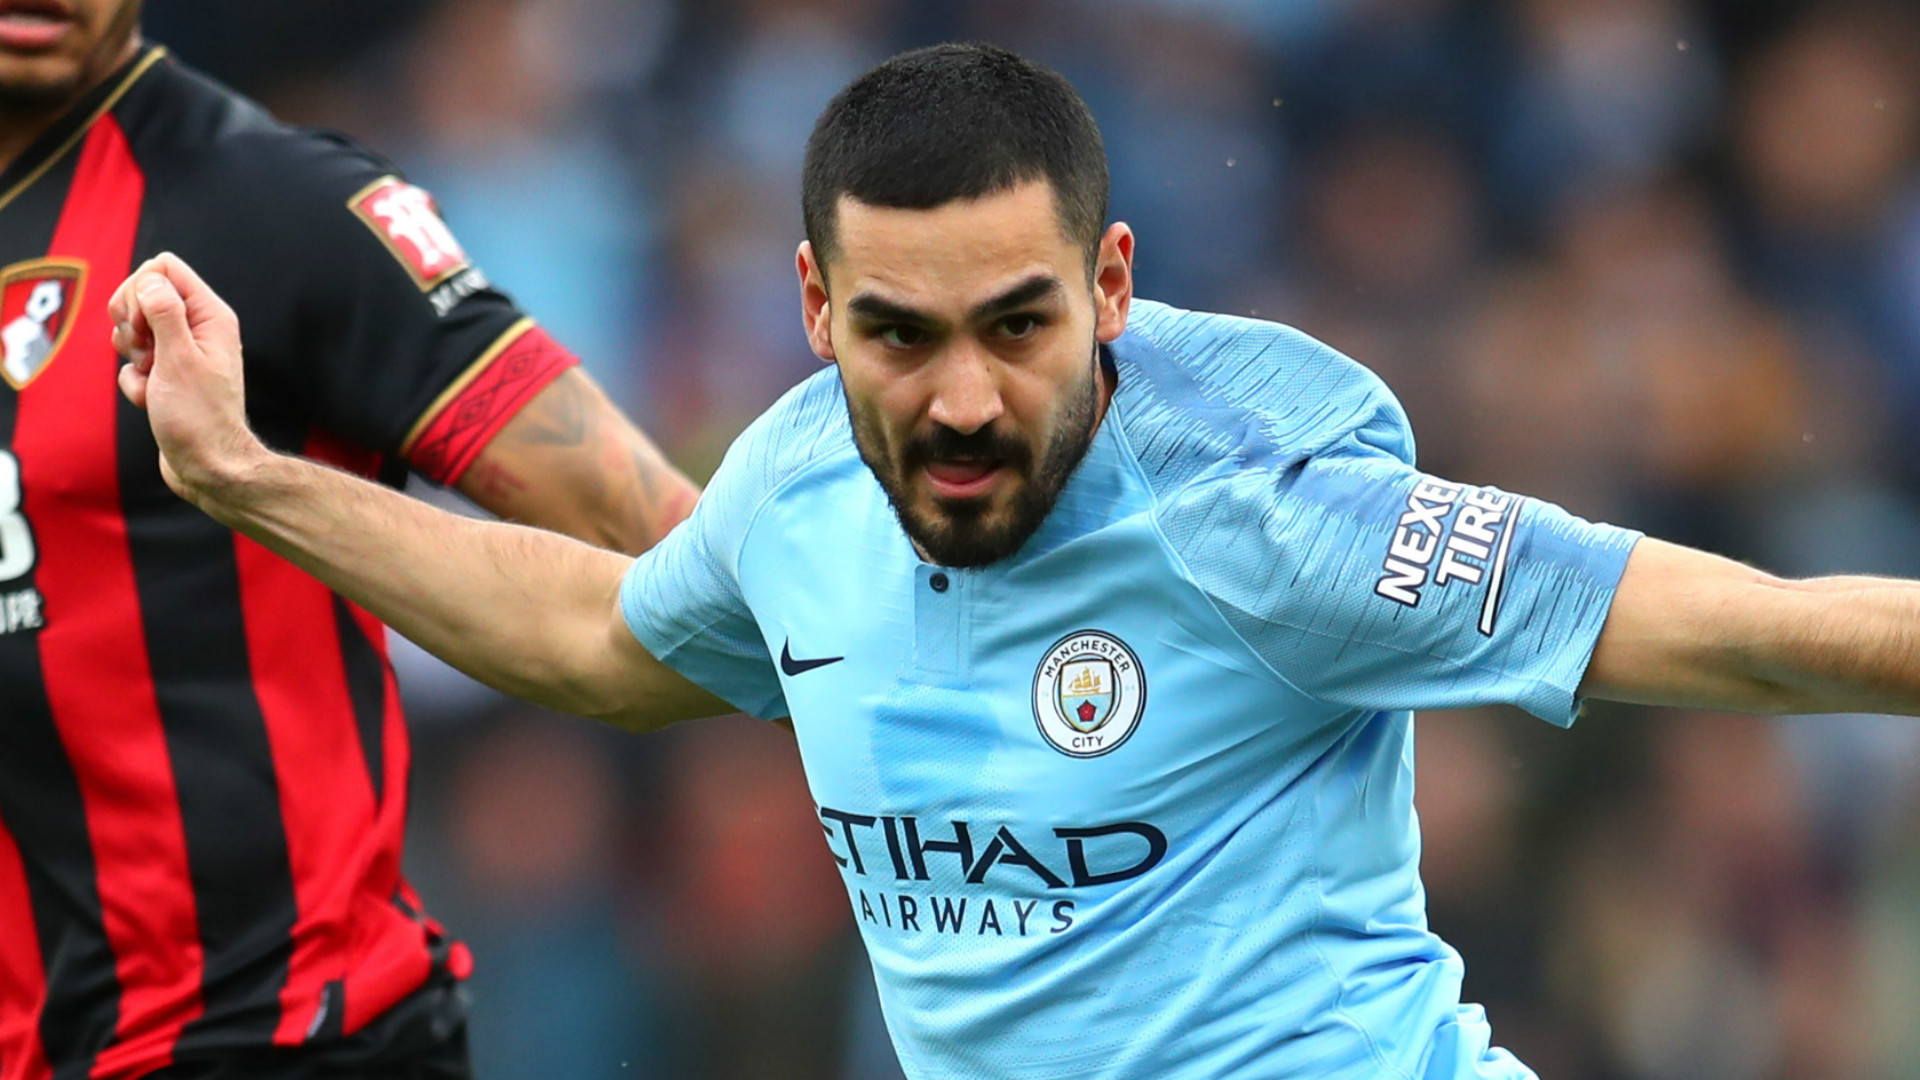 OFFICIEL - Gundogan prolonge avec Manchester City